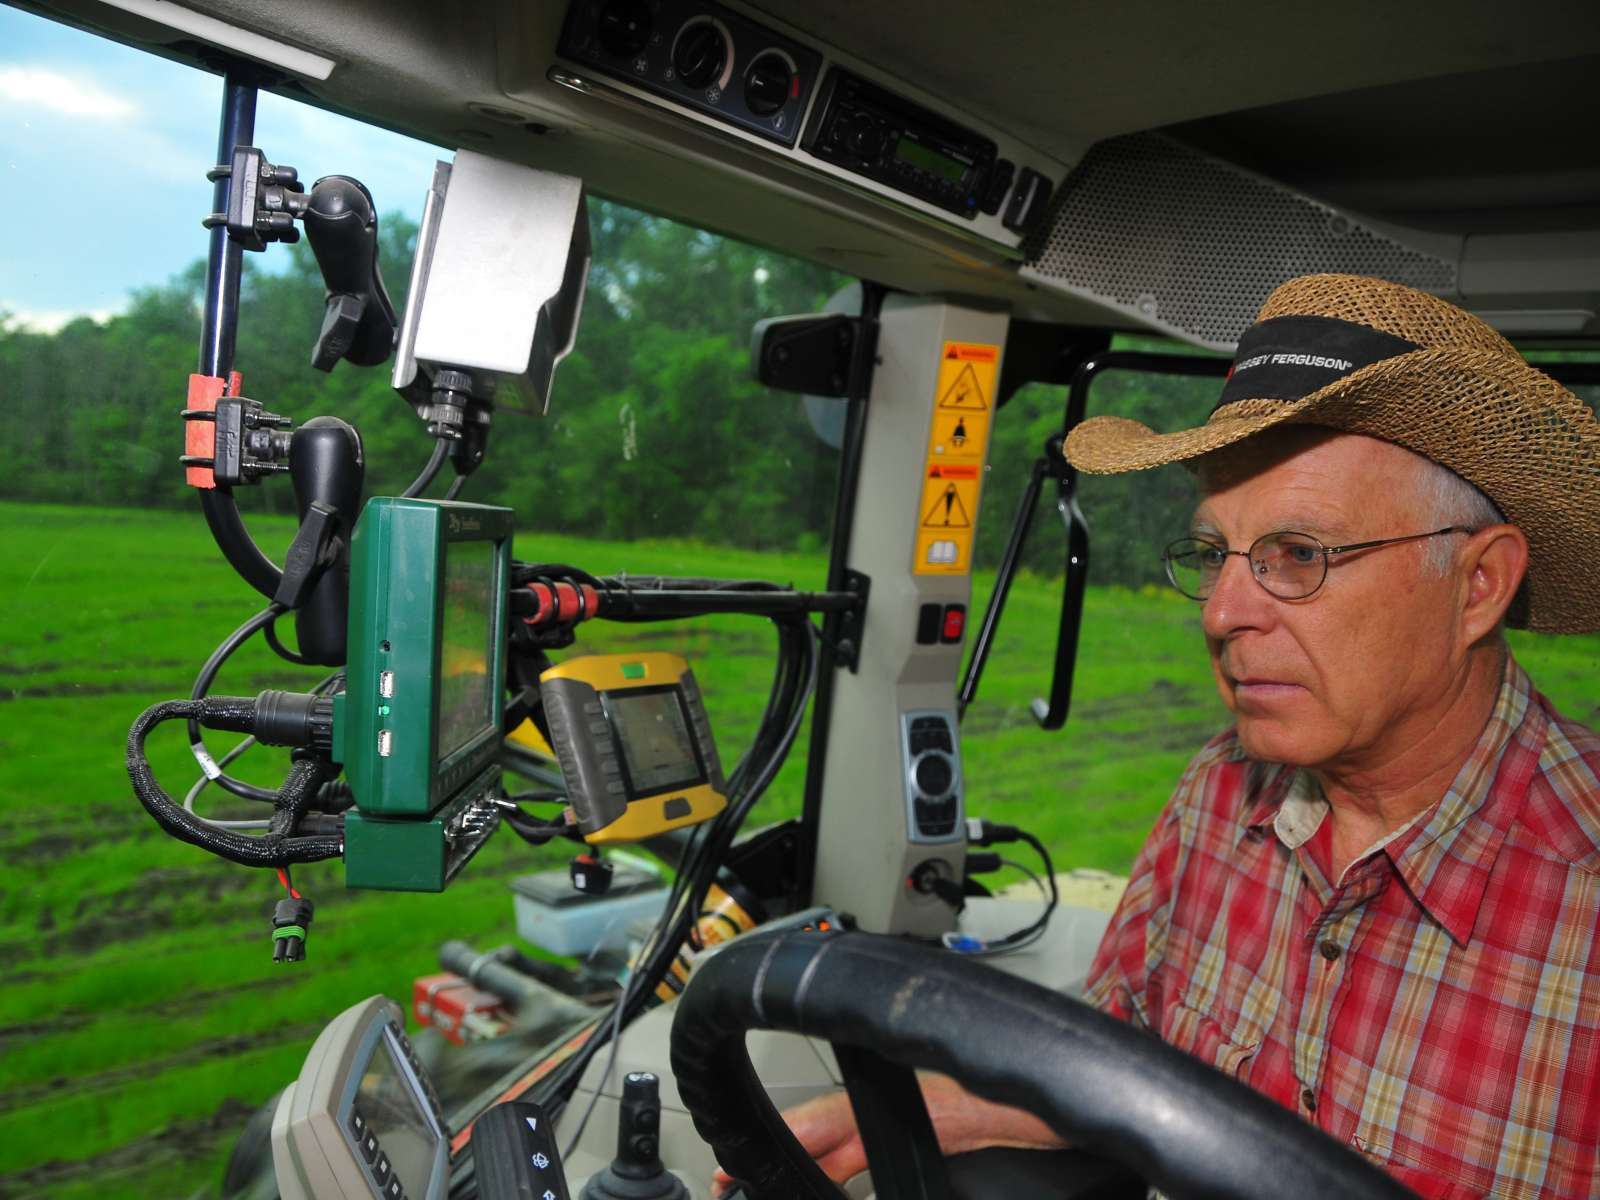 Farmer using technology in tractor